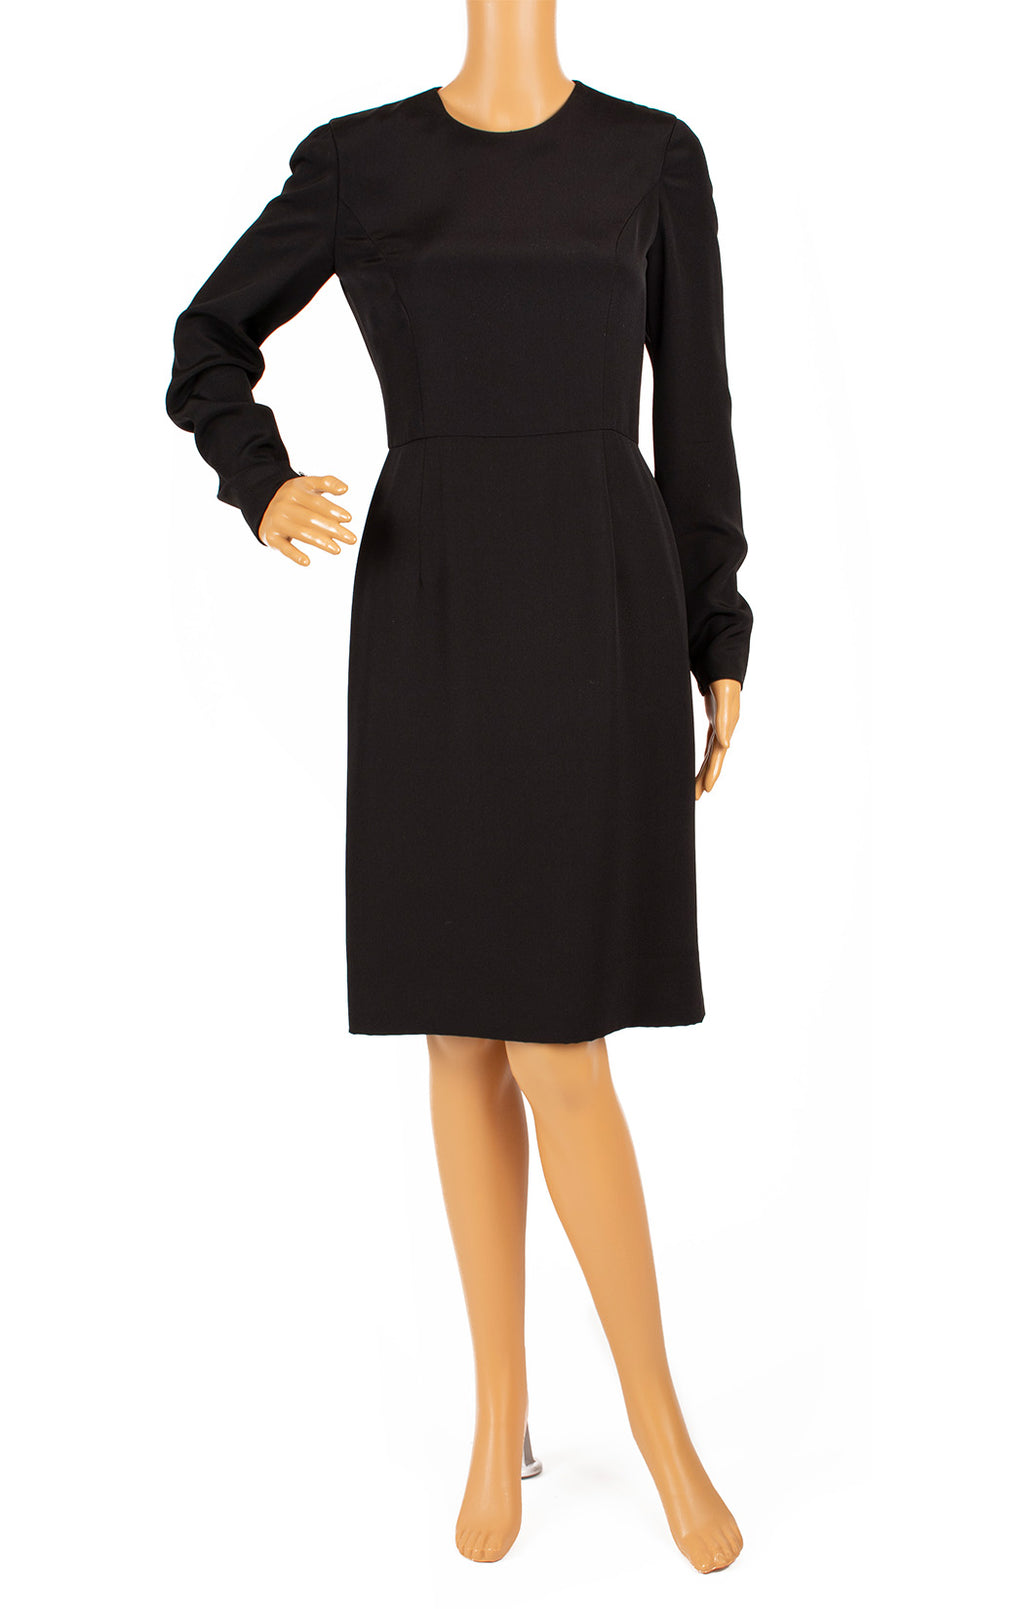 Front view of CAROLINA HERRERA Dress Size: 2